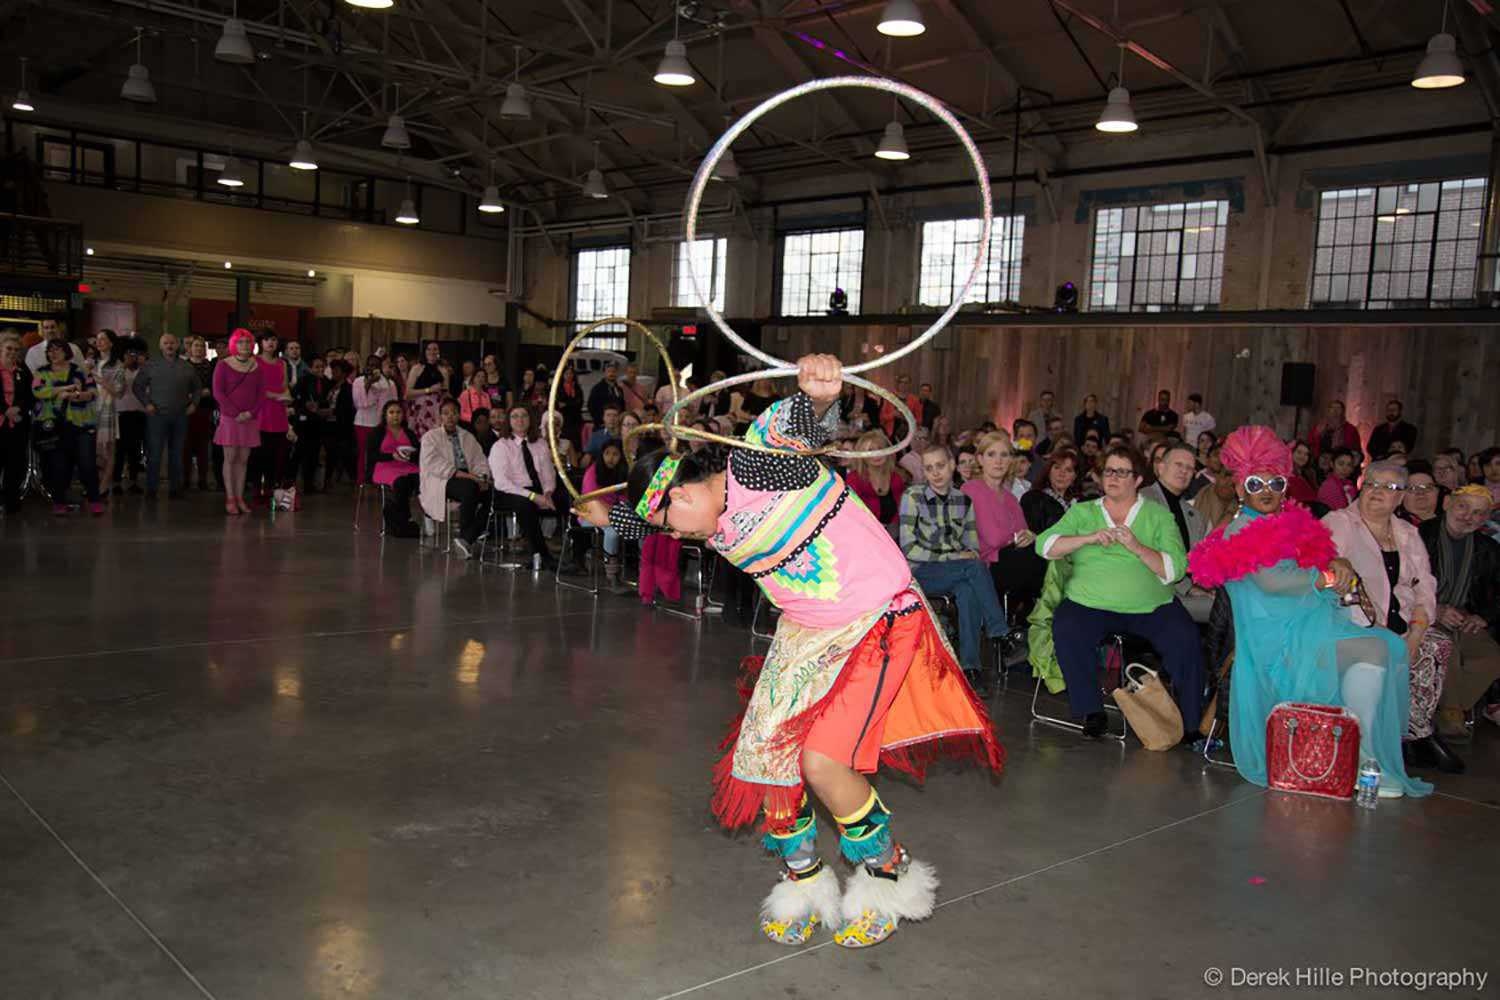 Theland Kicknosway dances at the Day of Pink gala (Photo: Derek Hills Photography)